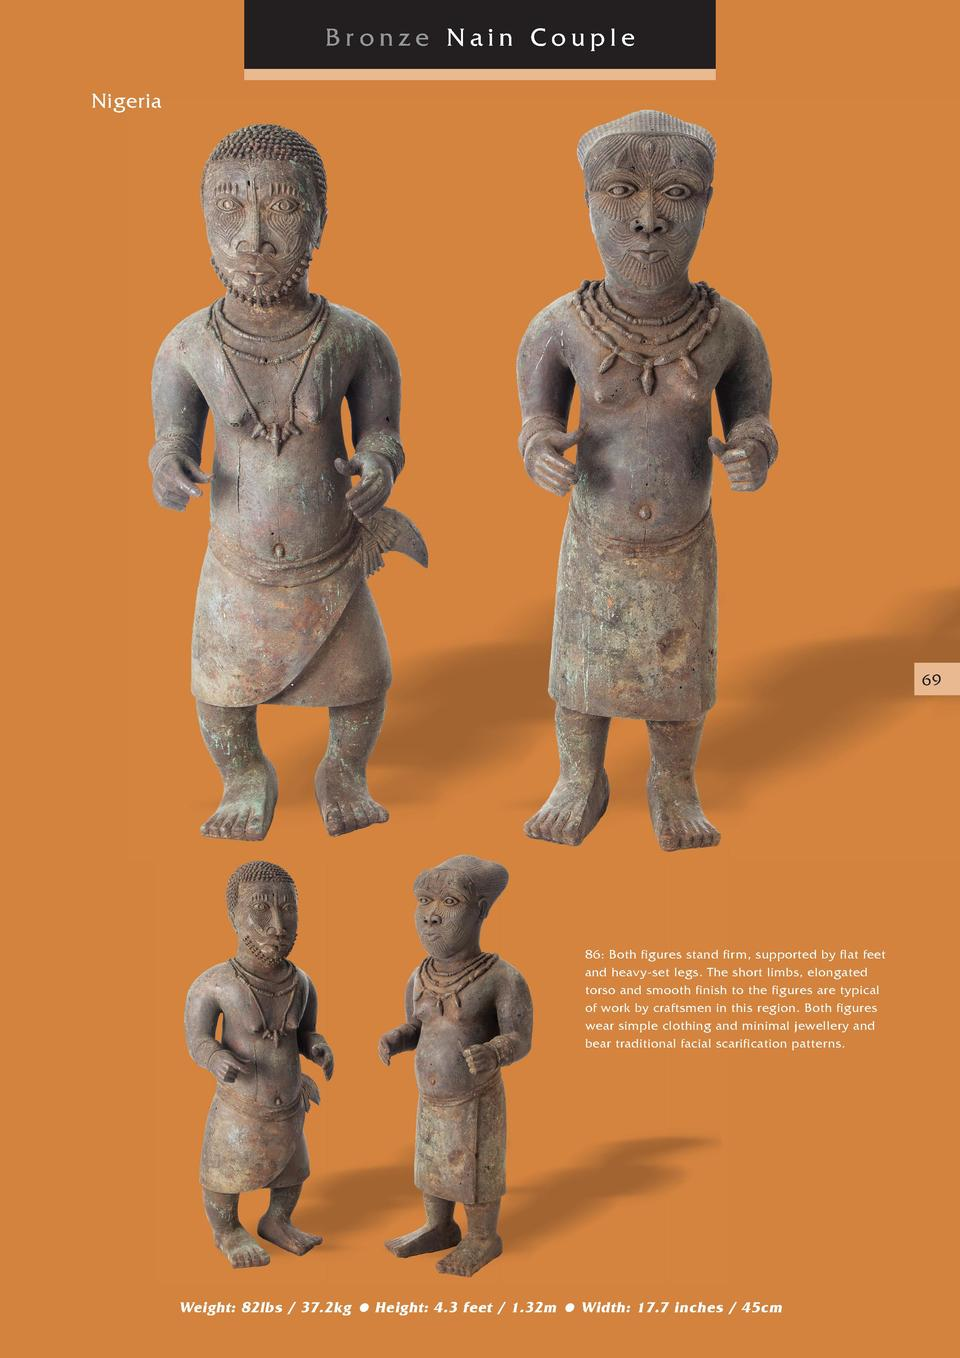 Bronze Nain Couple Nigeria  69  86  Both figures stand firm, supported by flat feet and heavy-set legs. The short limbs, e...